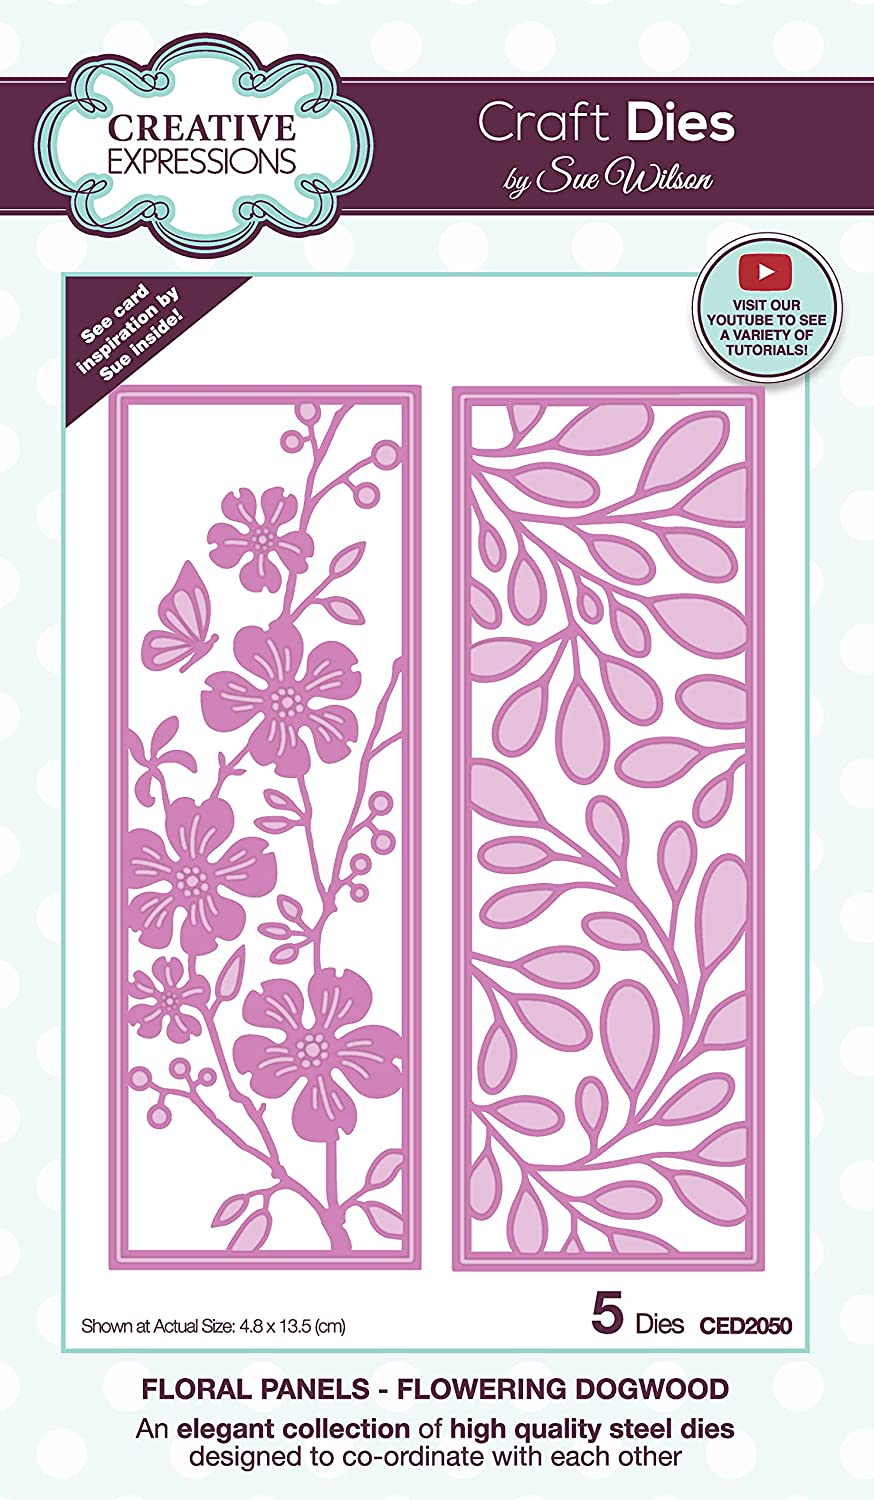 Creative Expressions Sue Outstanding Wilson - Panels Dogwood Craf Floral Financial sales sale